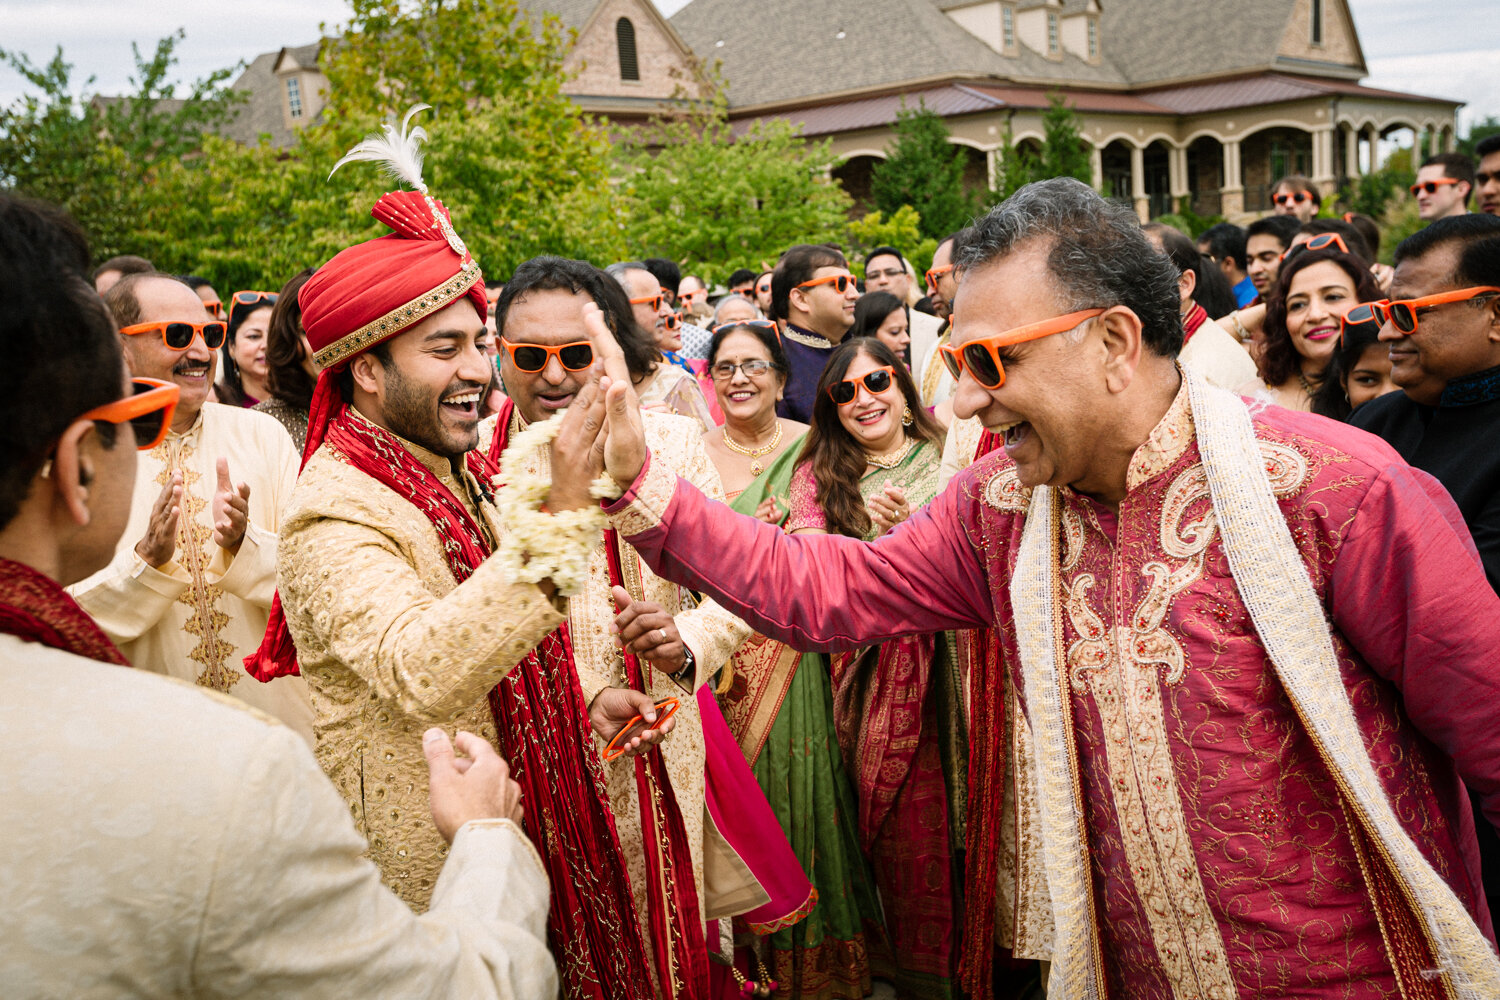 austin-texas-indian-wedding-photographer-edward-bennett-50.jpg